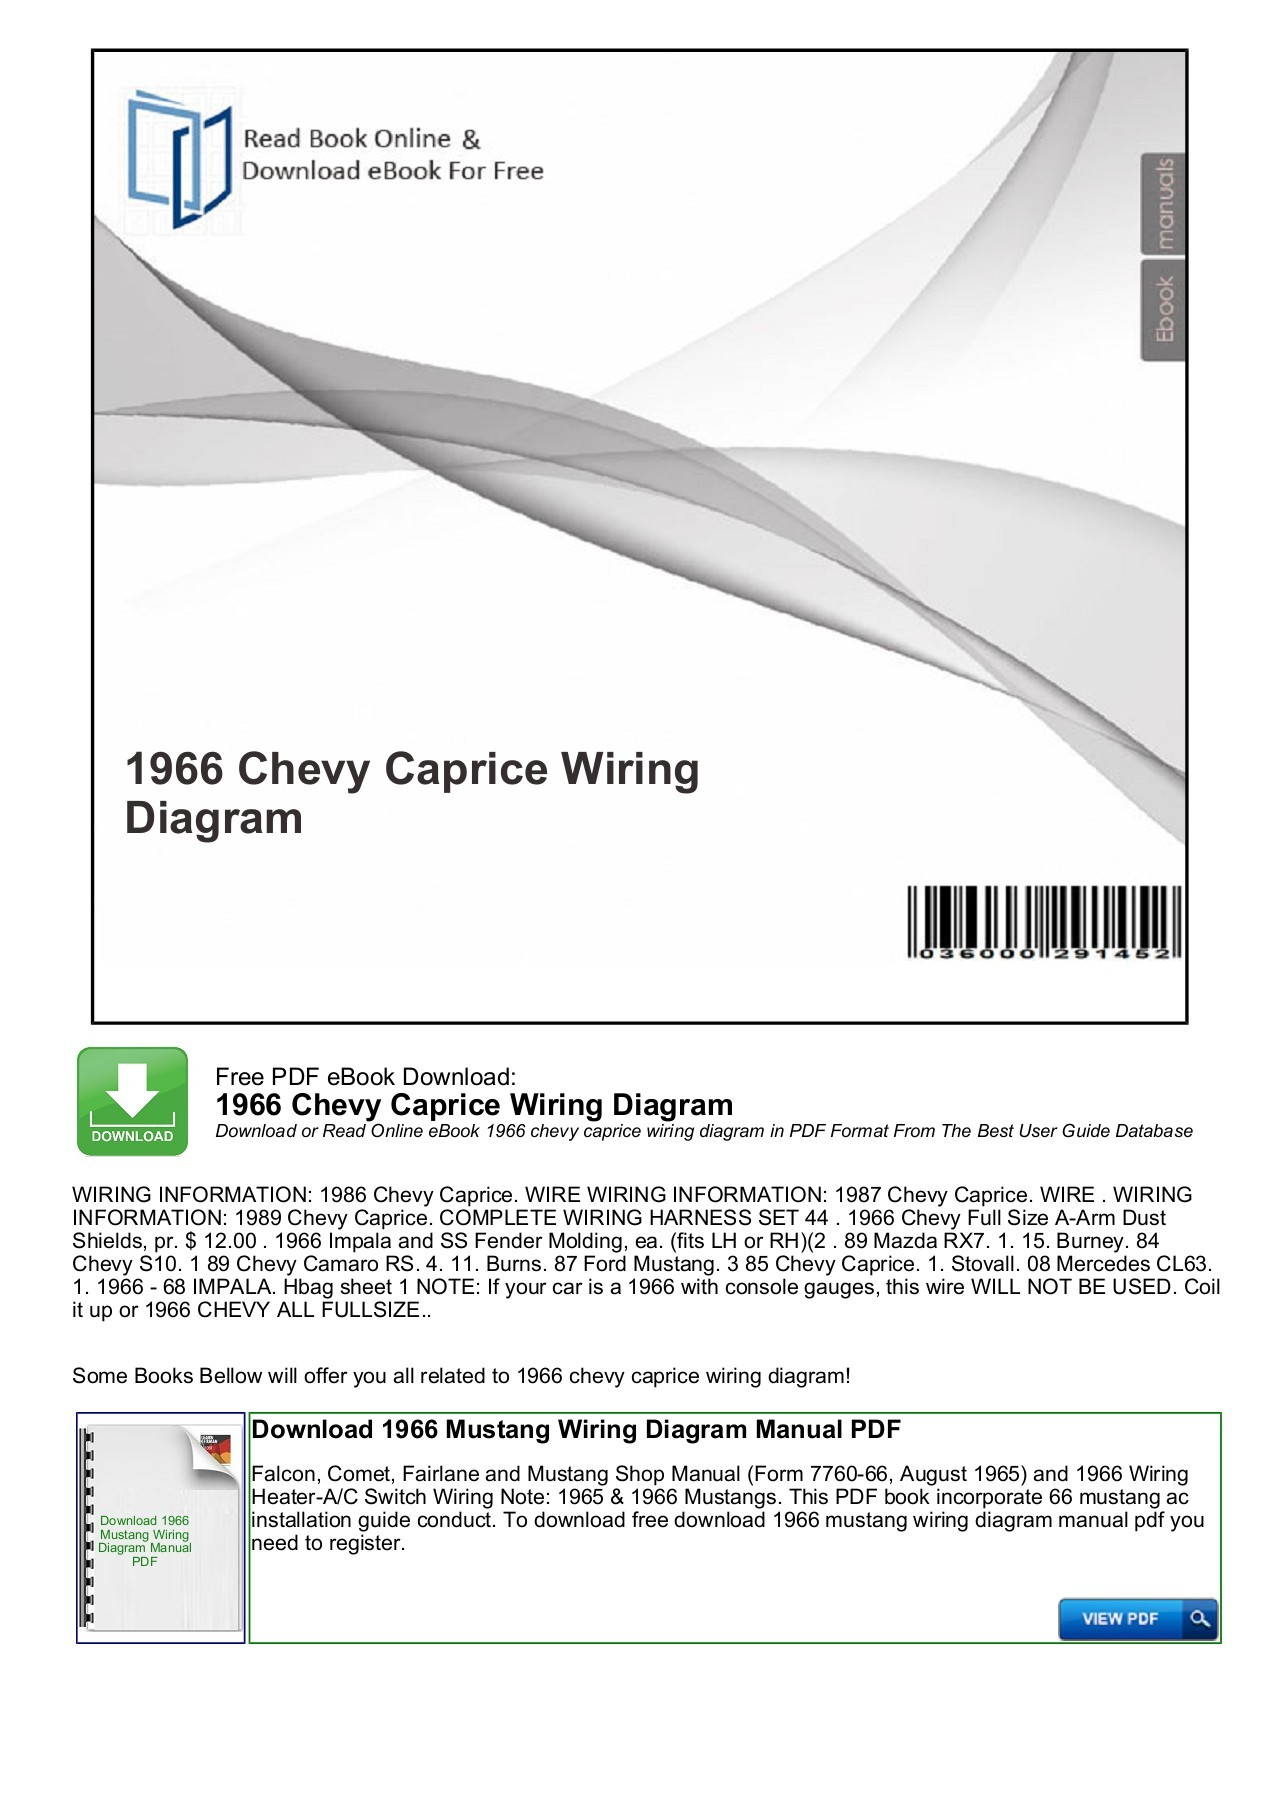 hight resolution of 1966 chevy caprice wiring diagram mybooklibrary com pages 1 7 rh fliphtml5 com 65 impala 66